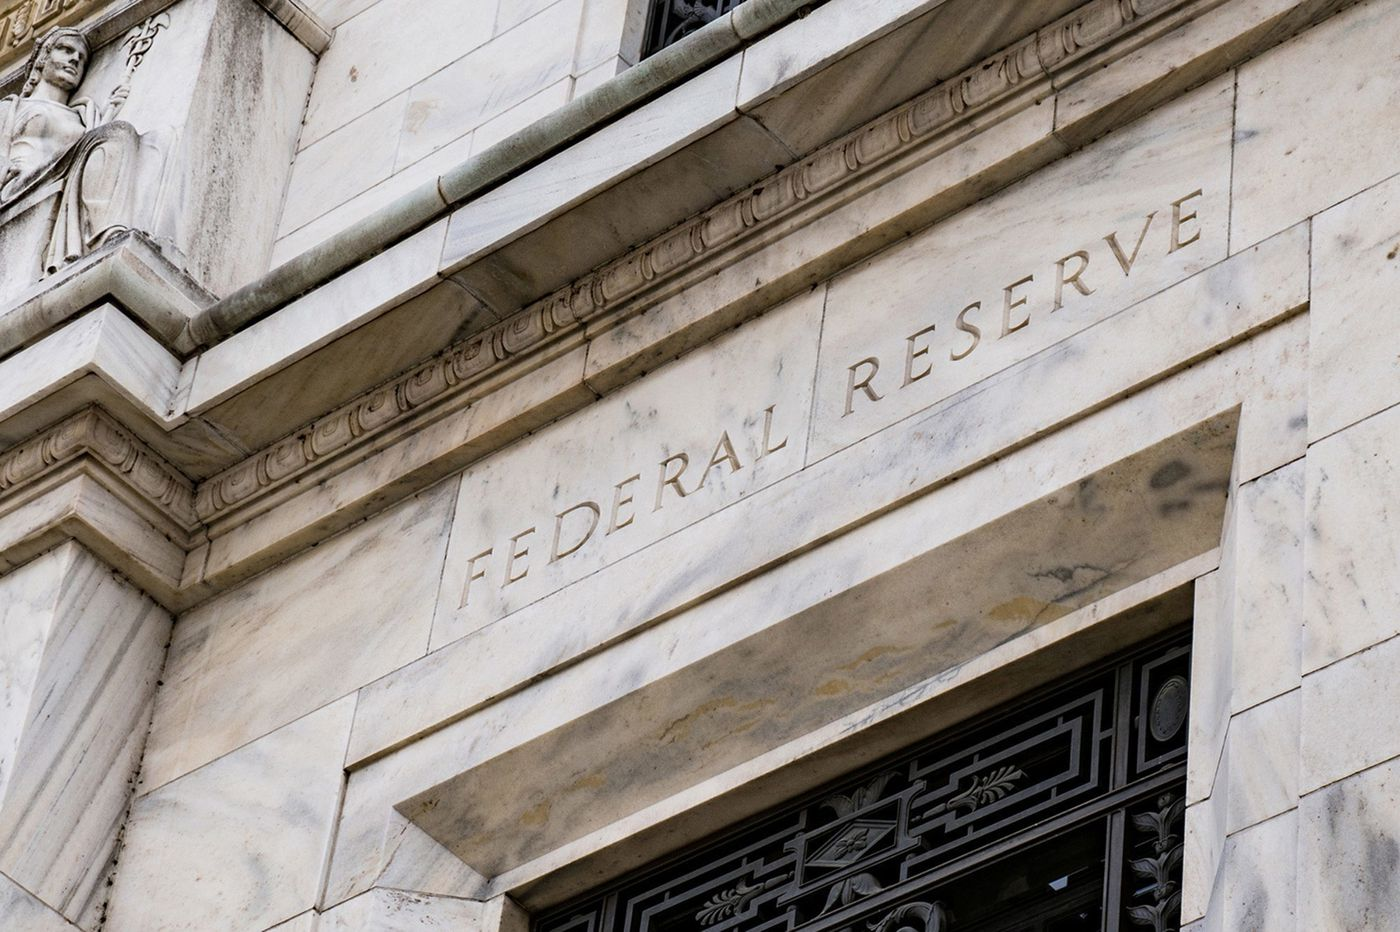 Fed to give $500 billion to large companies, won't require them to preserve jobs or limit exec pay